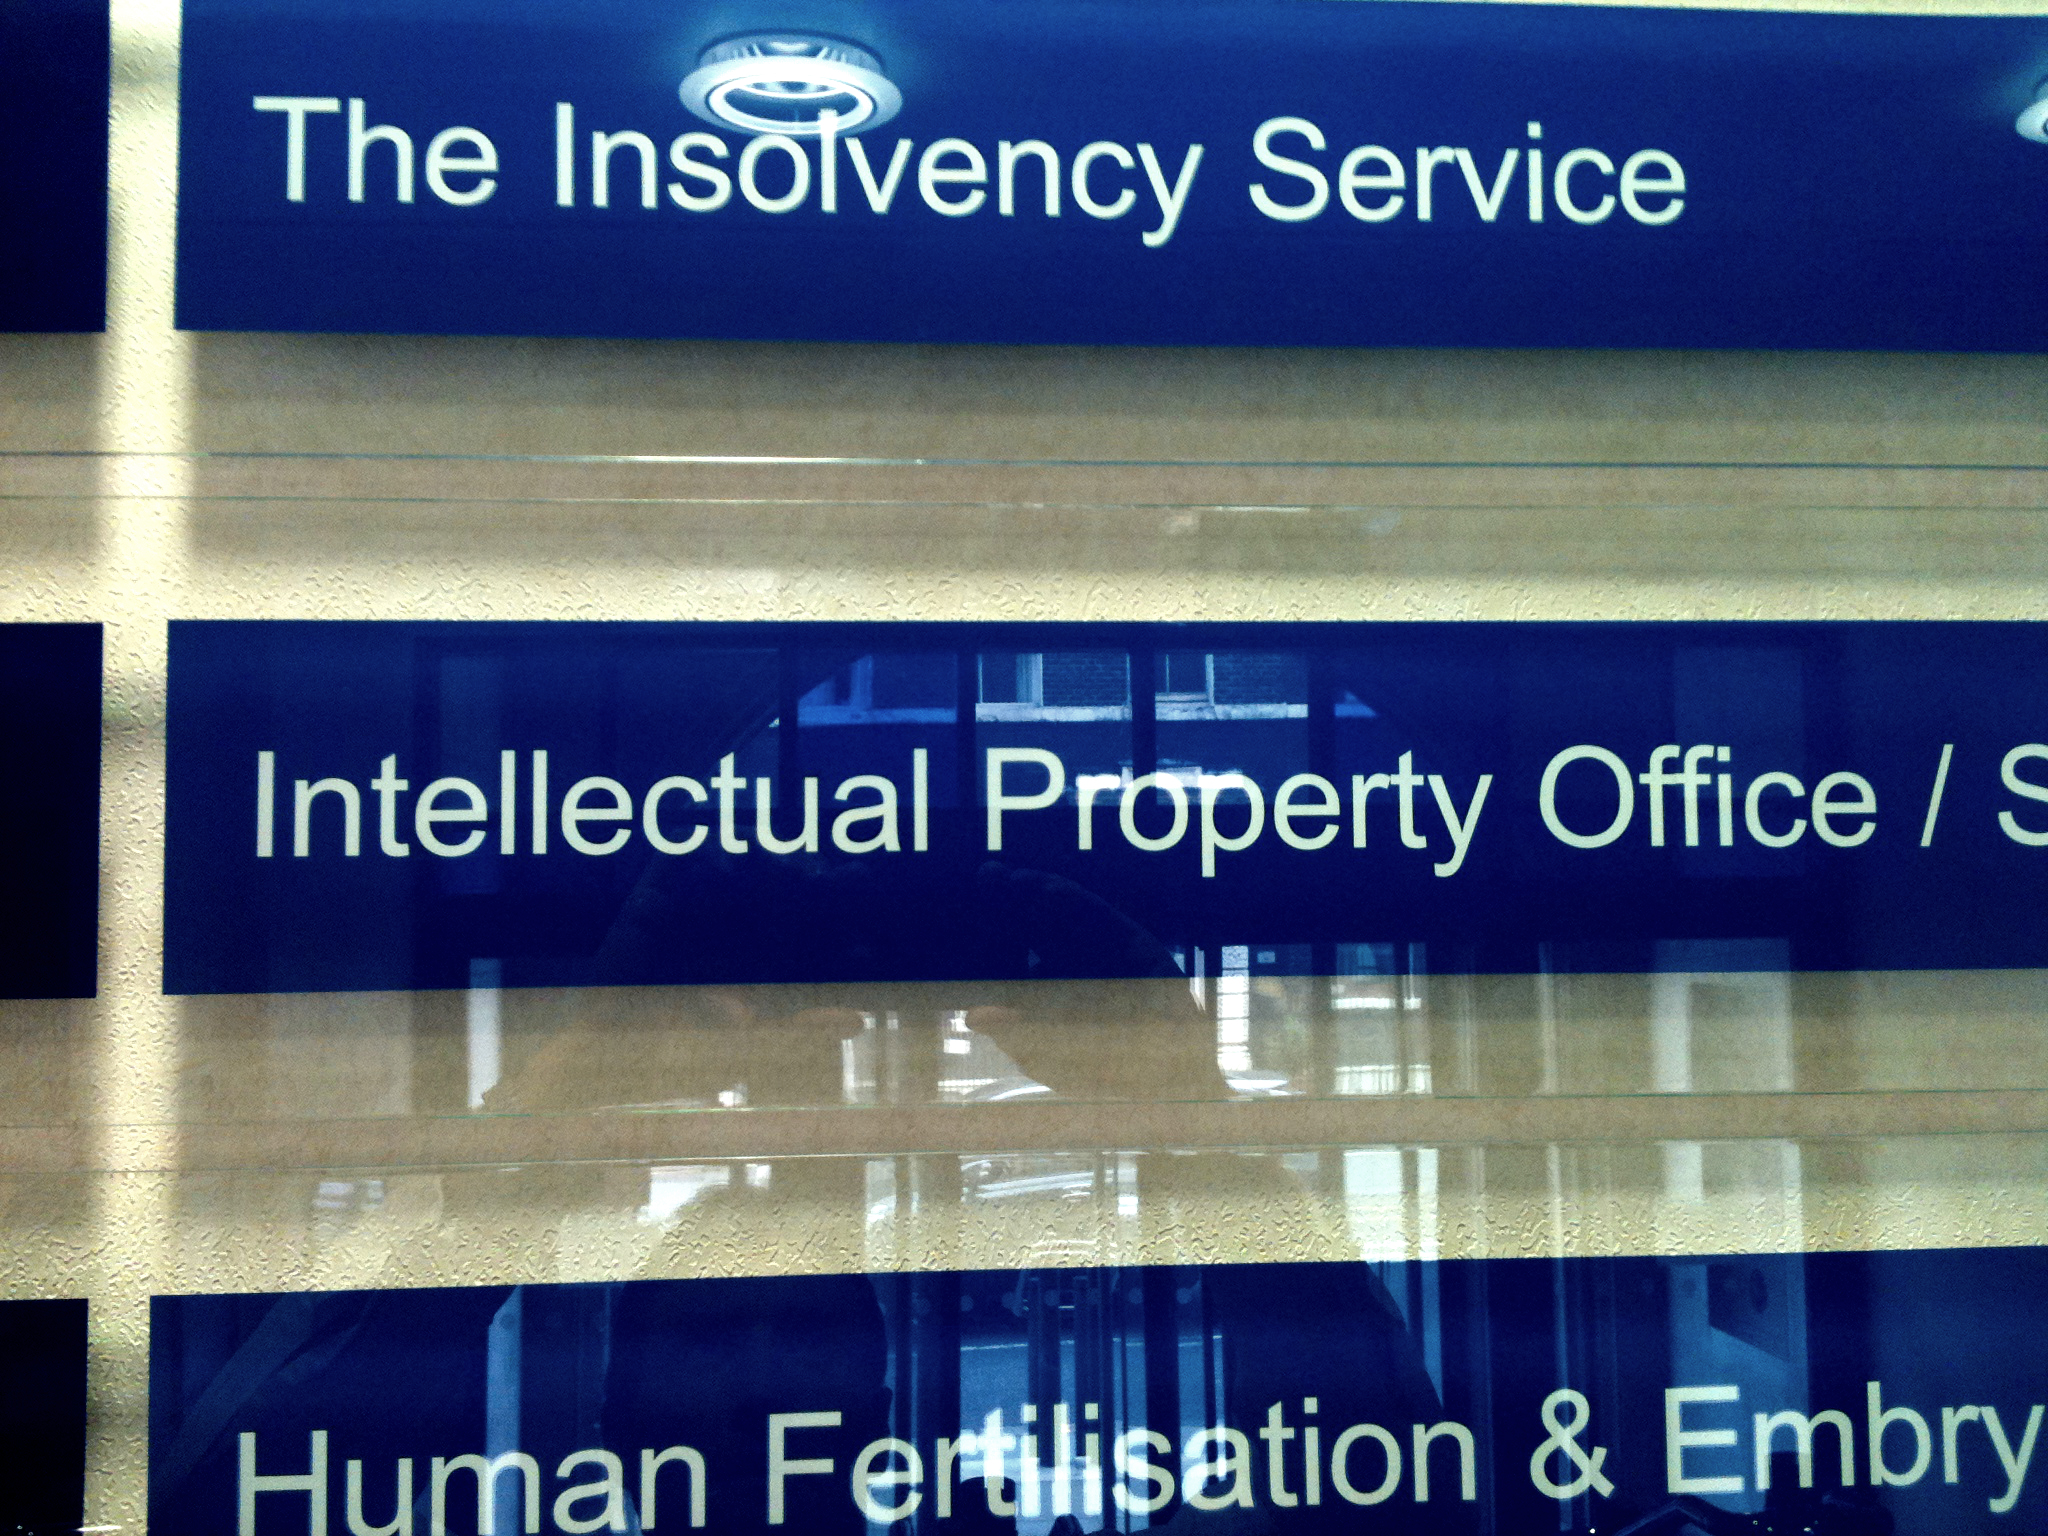 Engraved Plaques Door Signs IPO Intellectula Property Office sign by E Signs ® E Signs is the registered trade mark of Lewis Critchley www.e-signs.co.uk